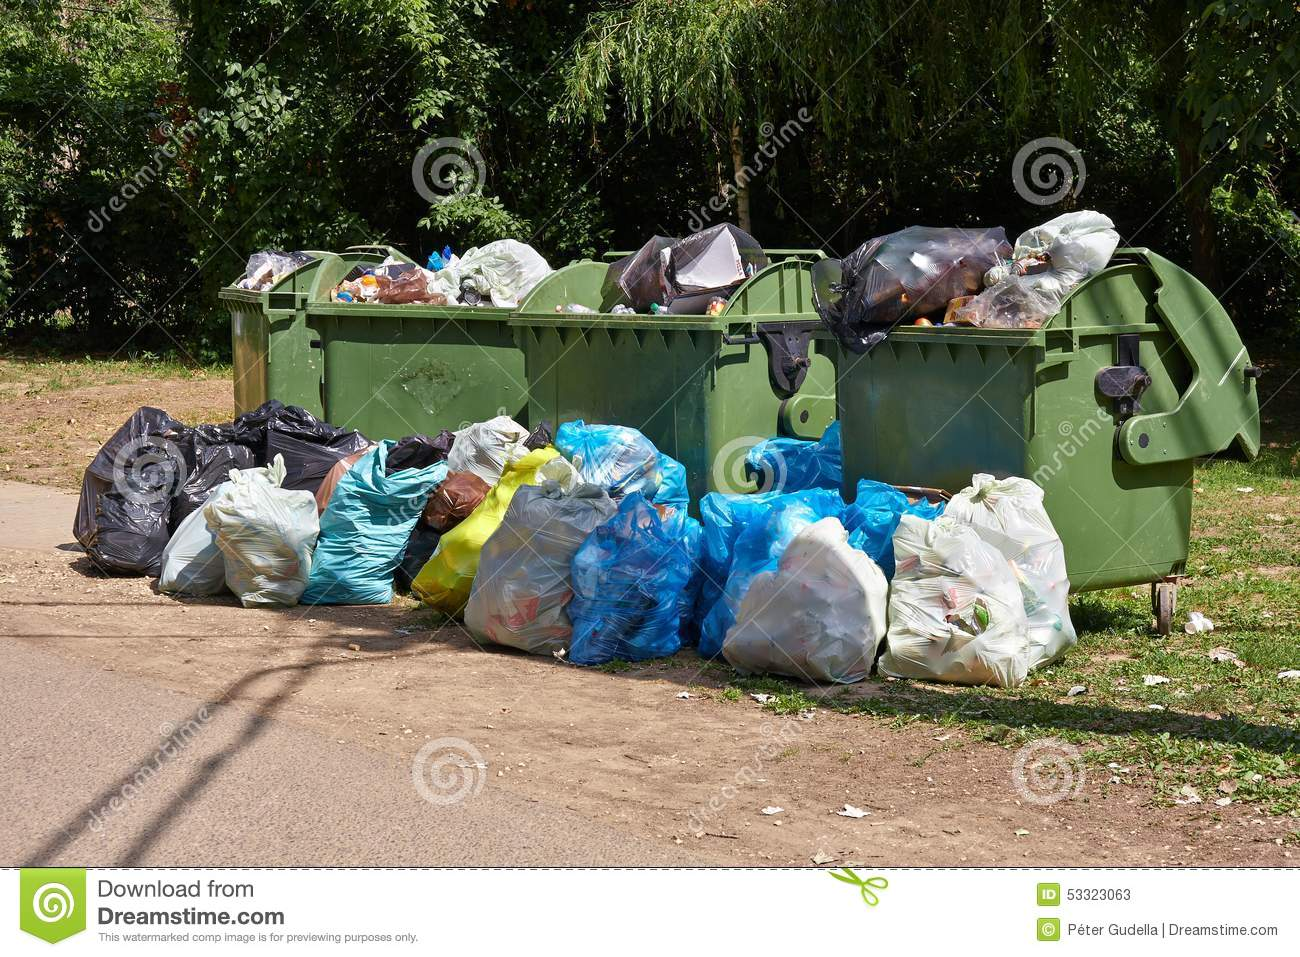 Big W Rubbish Bin Garbage Containers Full Overflowing Stock Image Image